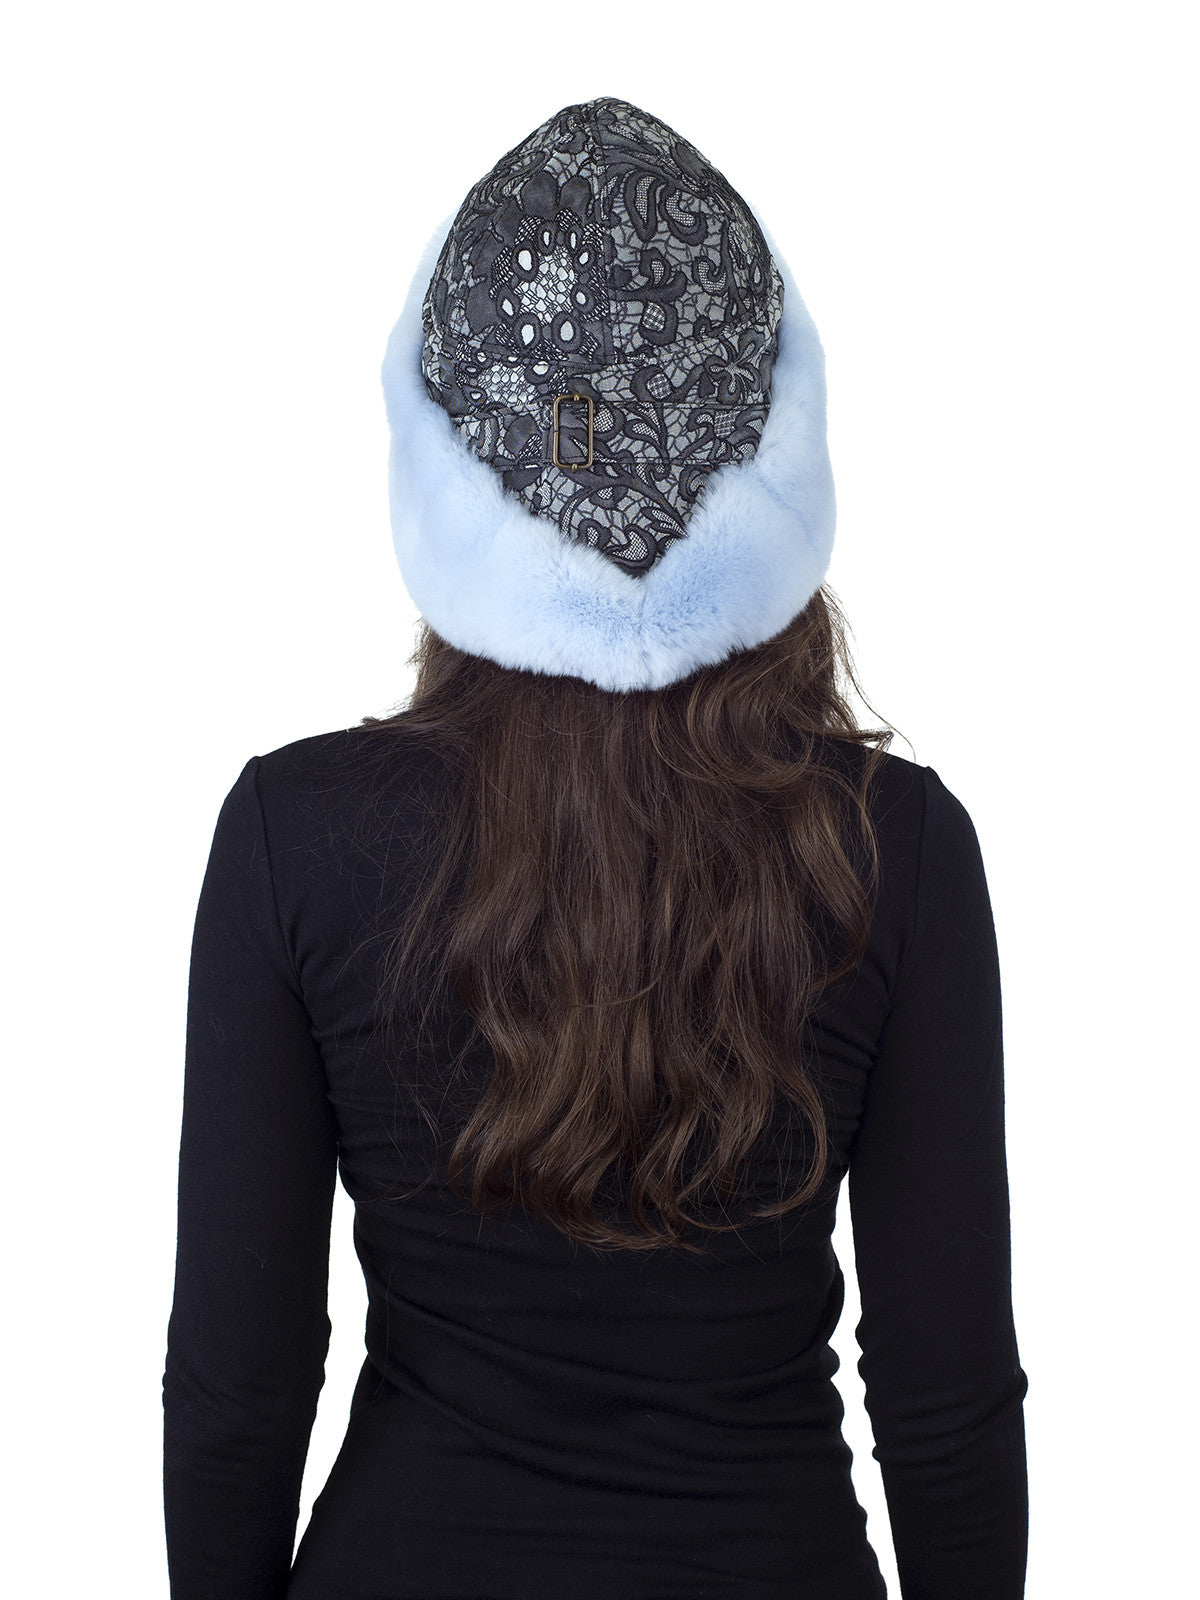 Baby Blue Rex Rabbit Hat with Black and Off White Patterned Fabric